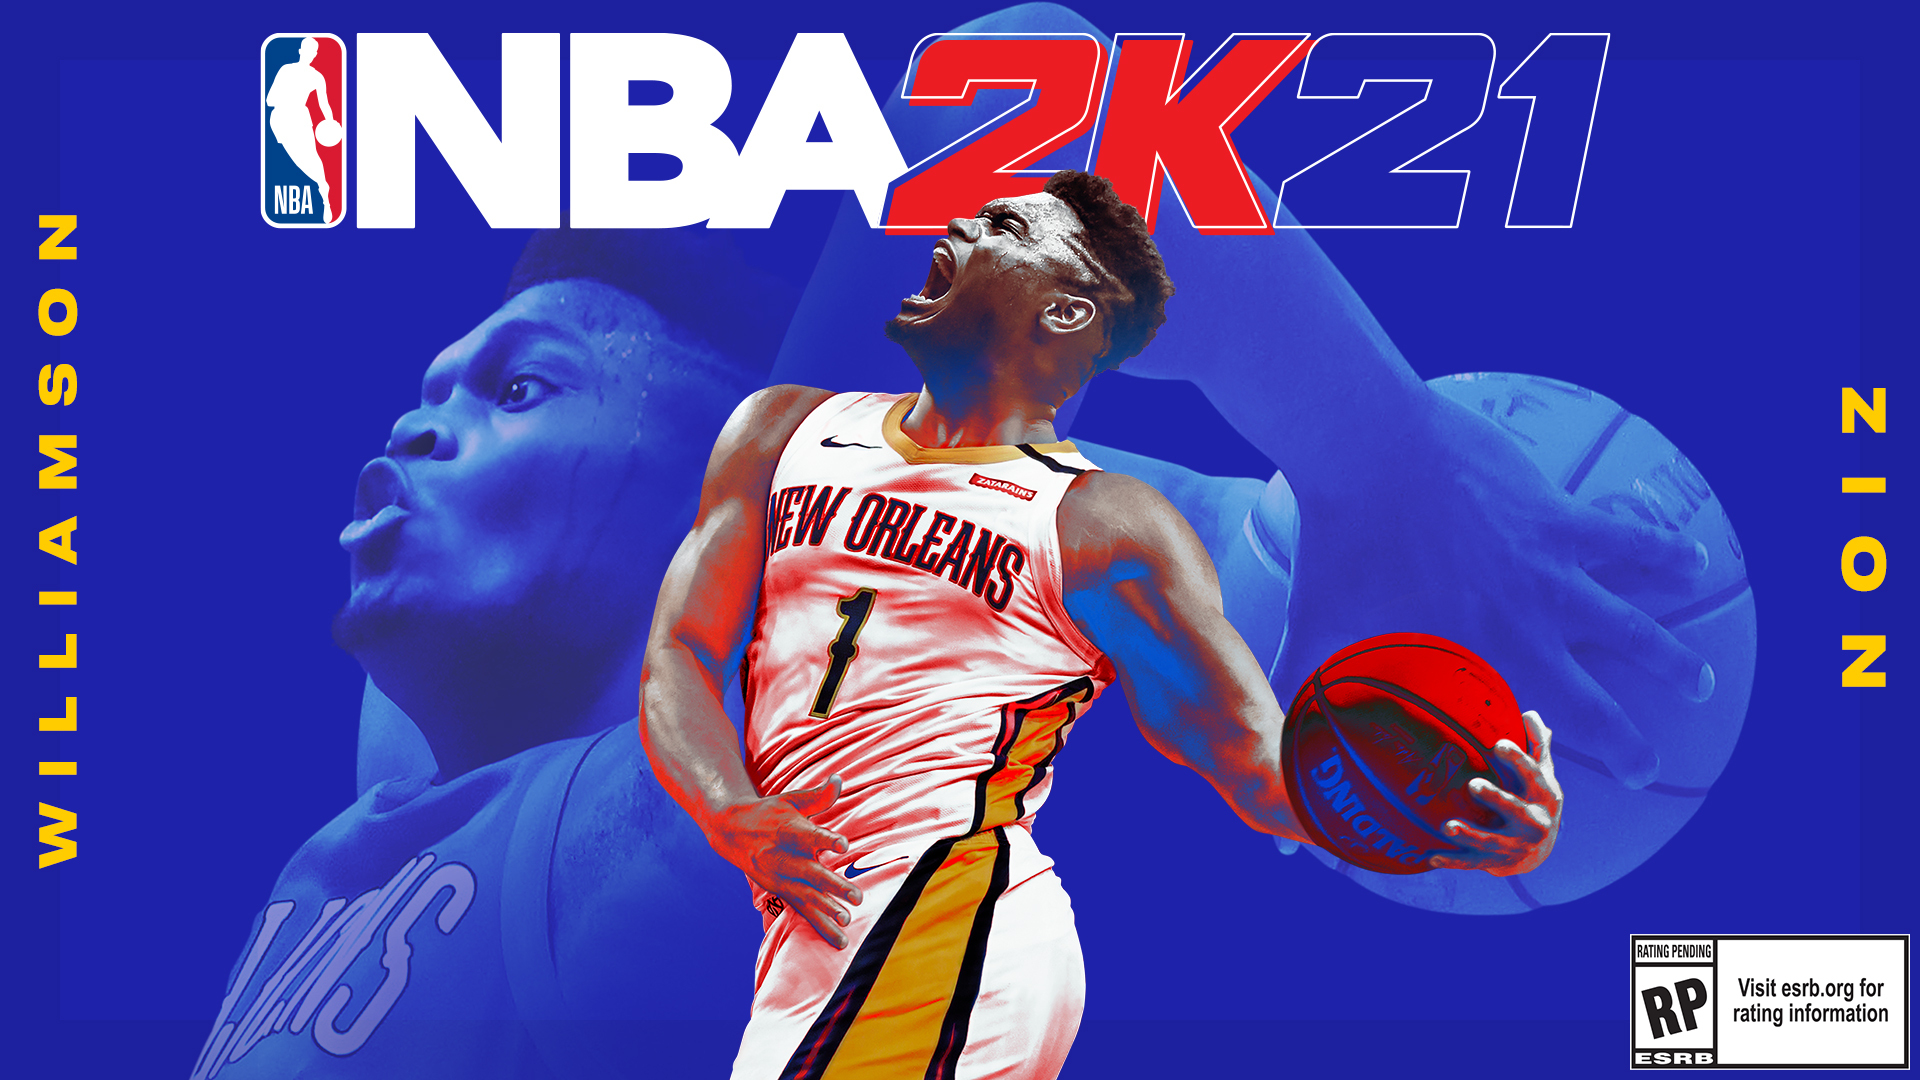 Zion Williamson On Cover Of Nba 2k21 For Next Gen